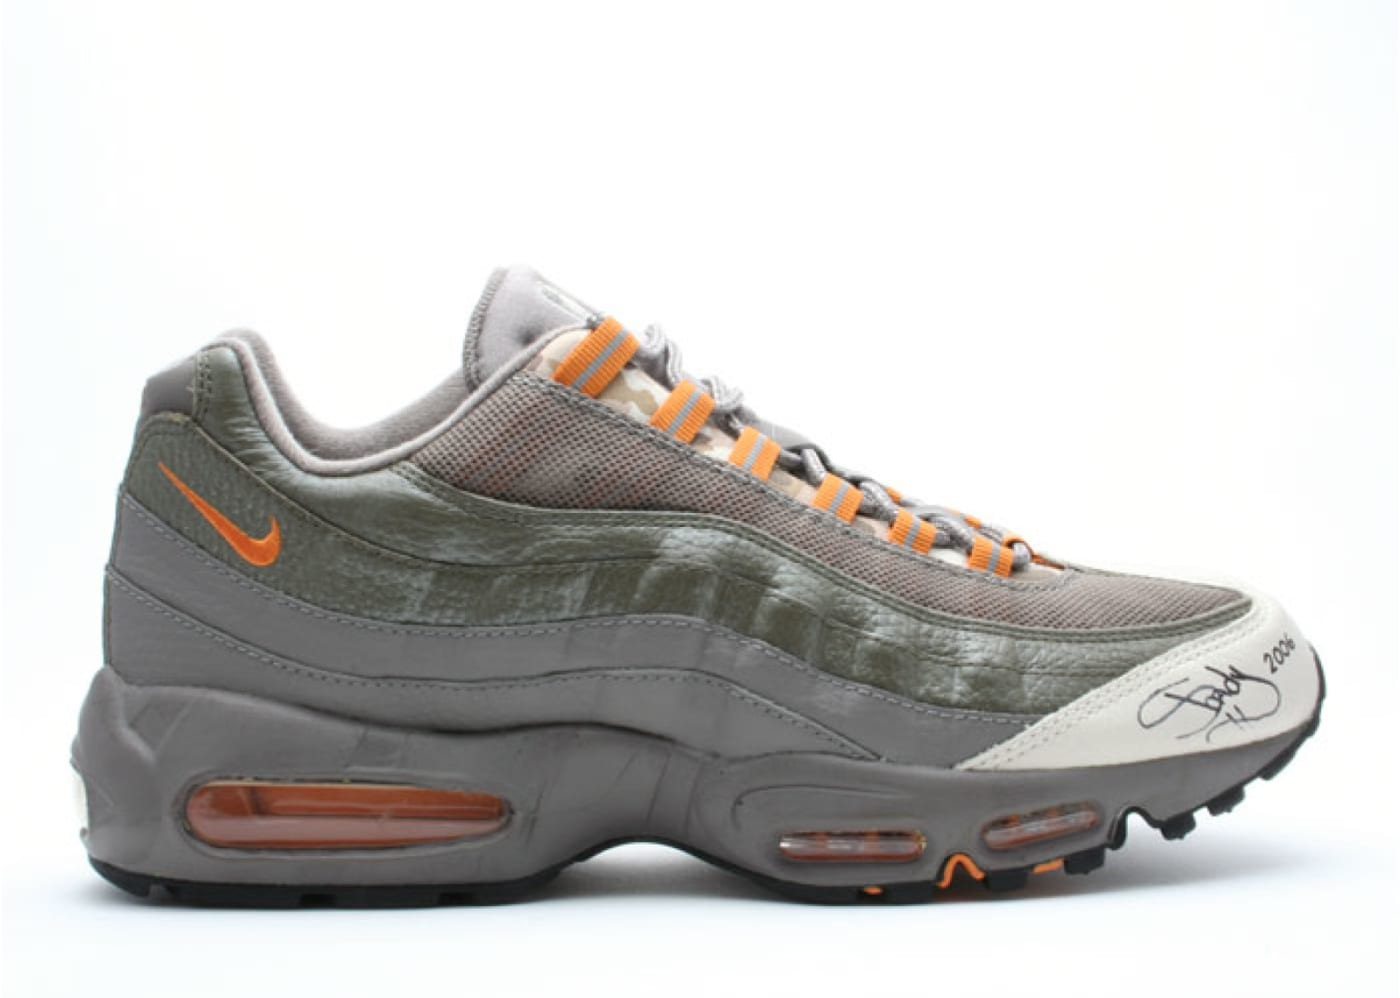 Nike Air Max 95: 20 Things You Didn't Know About the Sneaker   Complex